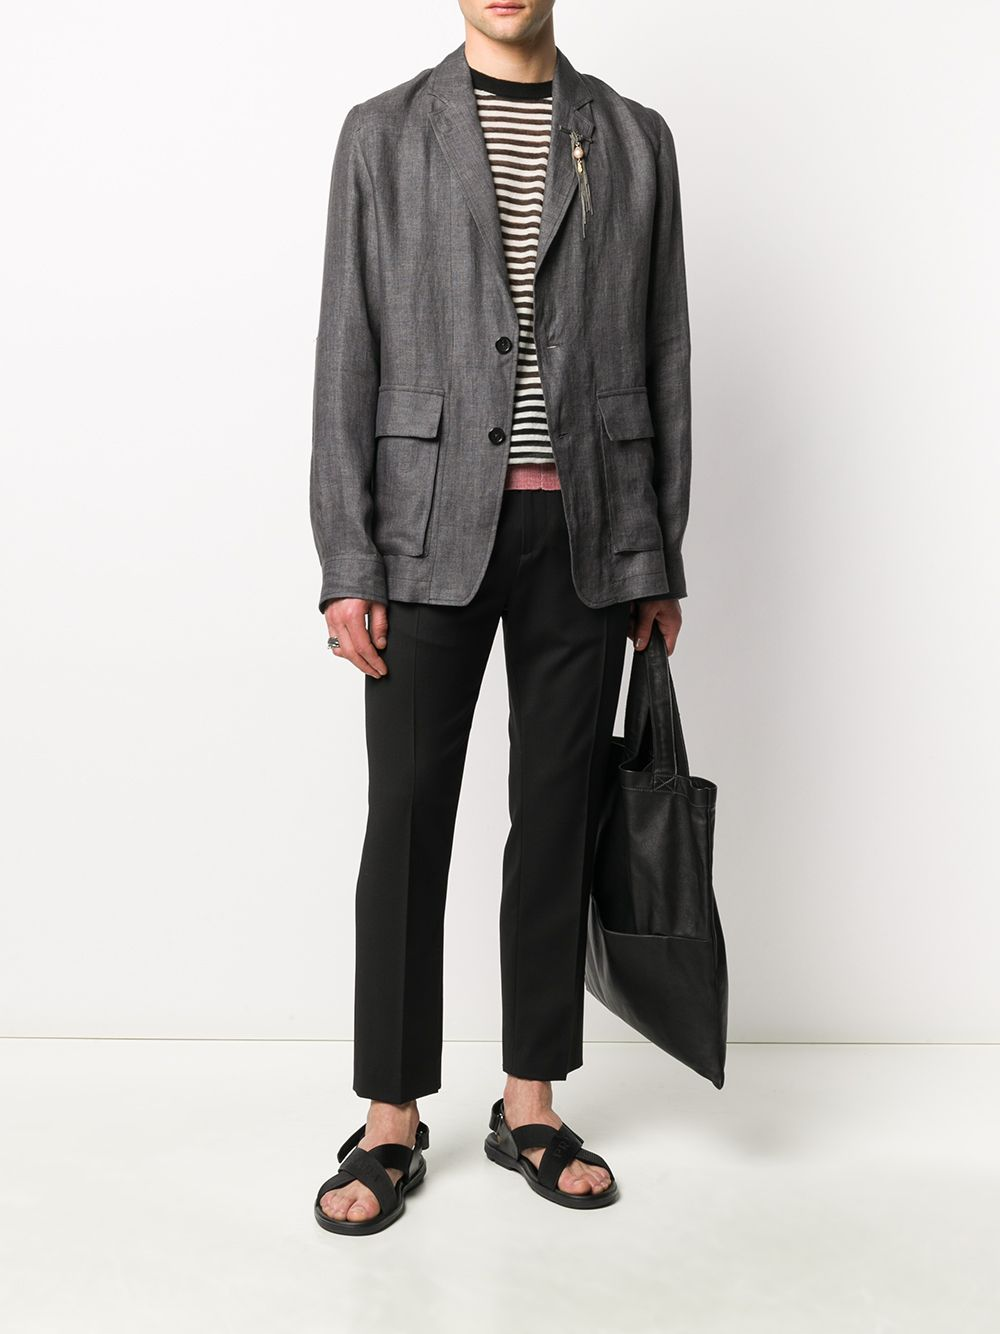 Giacca in lino ANN DEMEULEMEESTER | Giacca | 2007-3002-165060